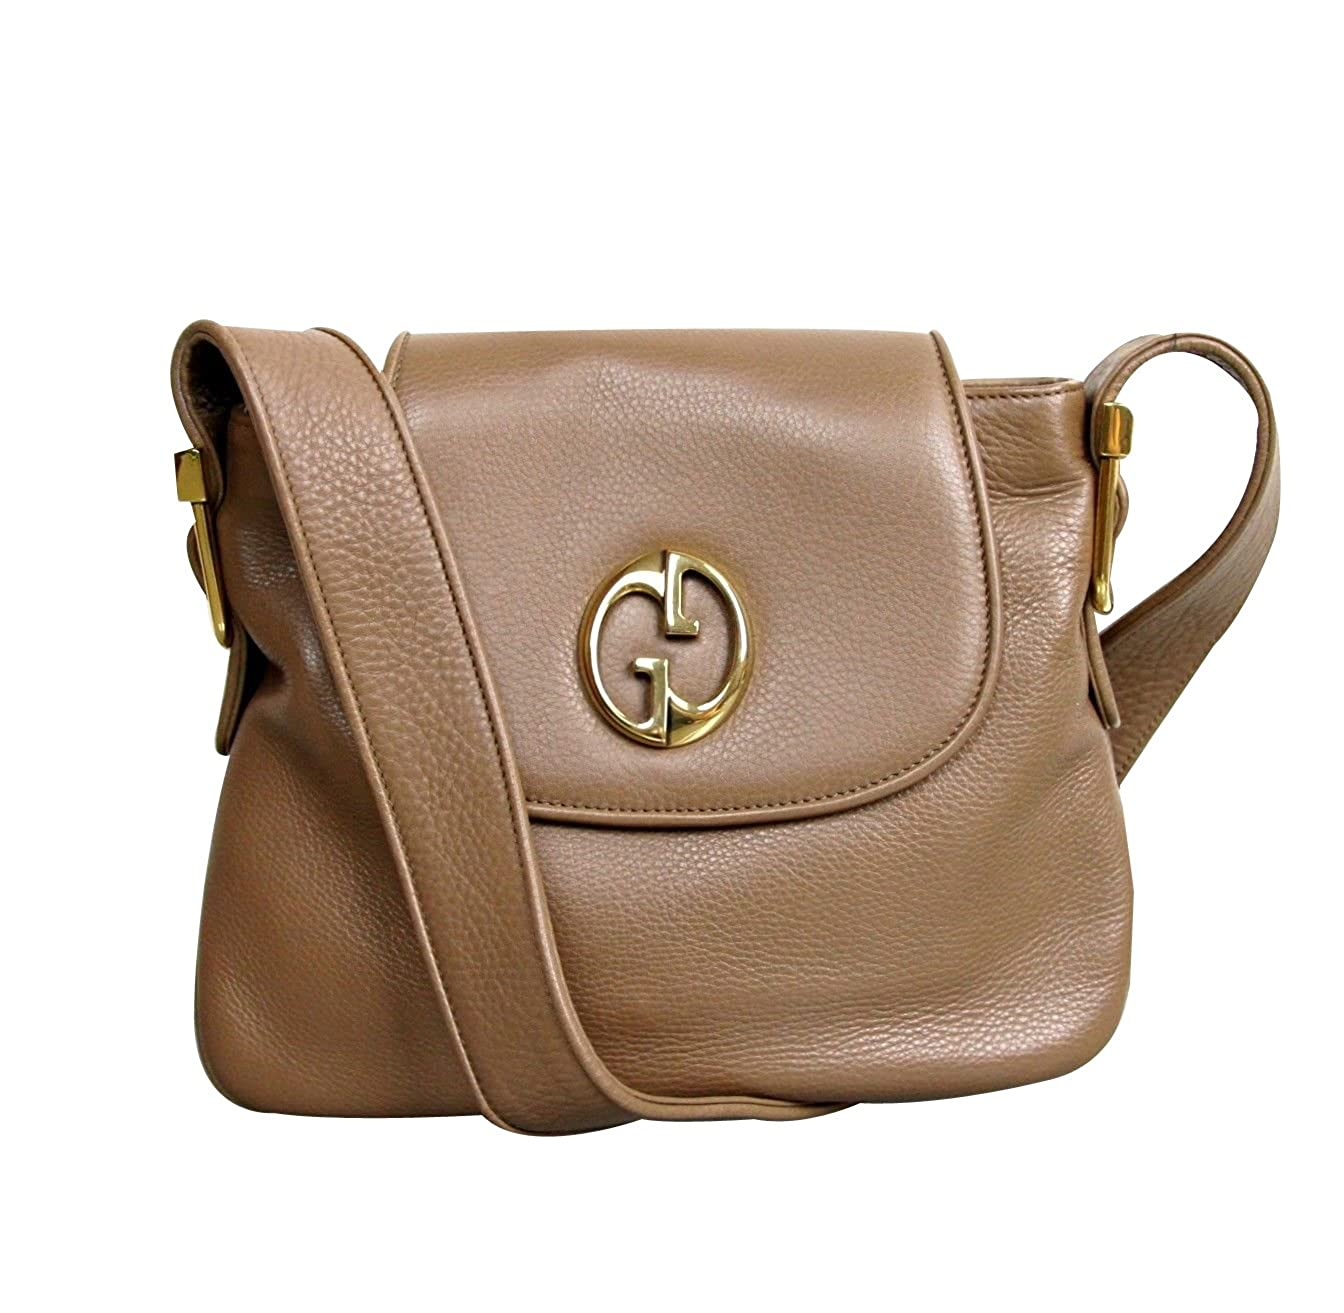 c63474f08a8 Top 10 wholesale Gucci Bag - Chinabrands.com